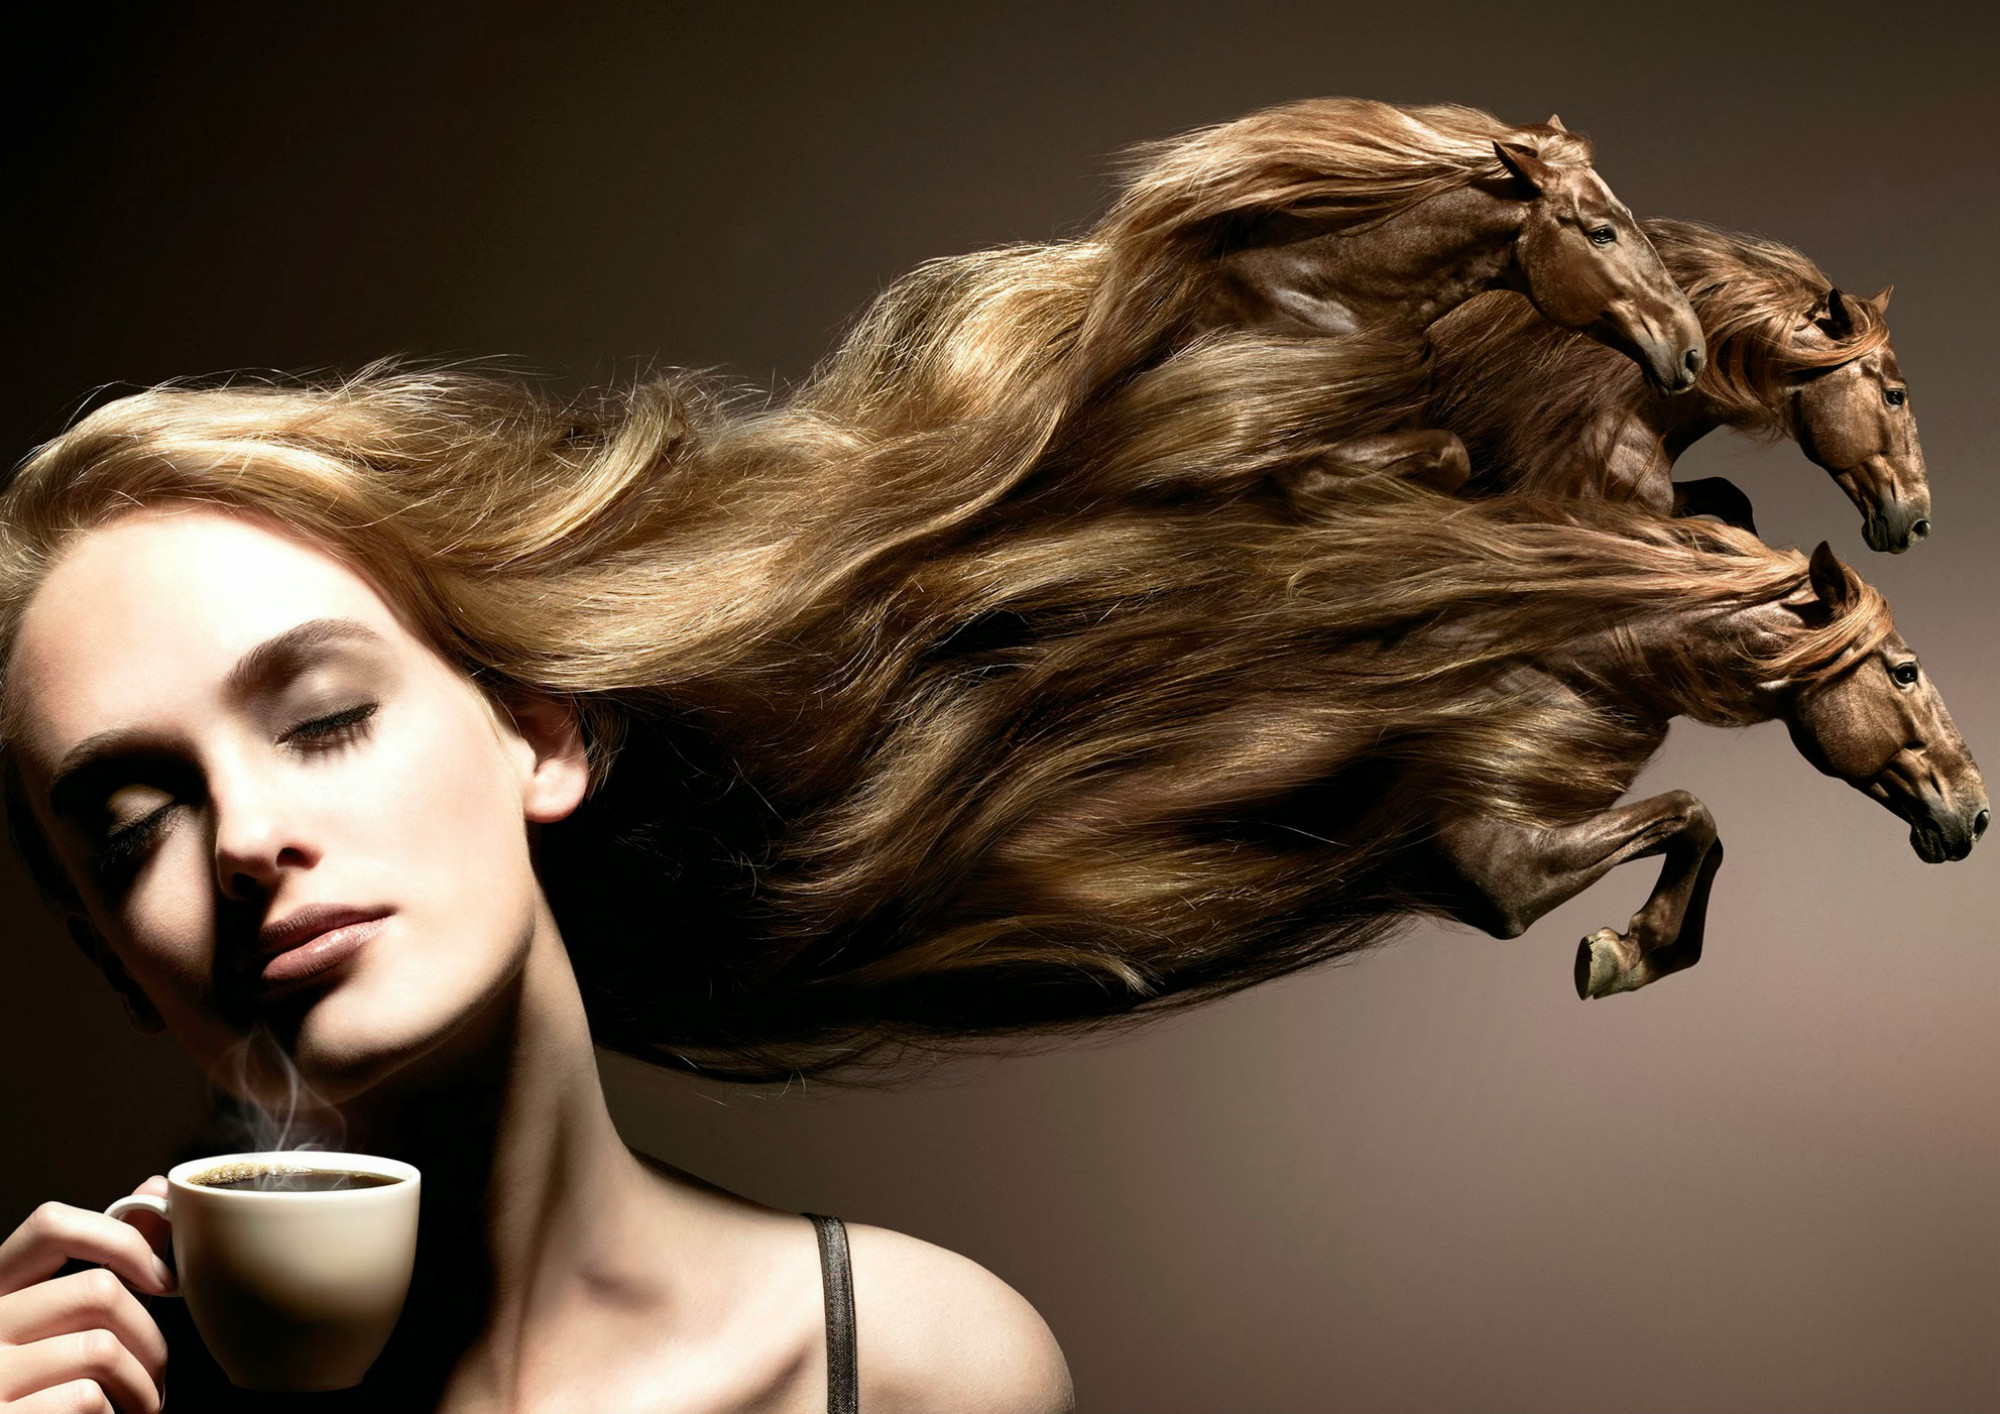 surreal photo manipulations digital hair coffee horses